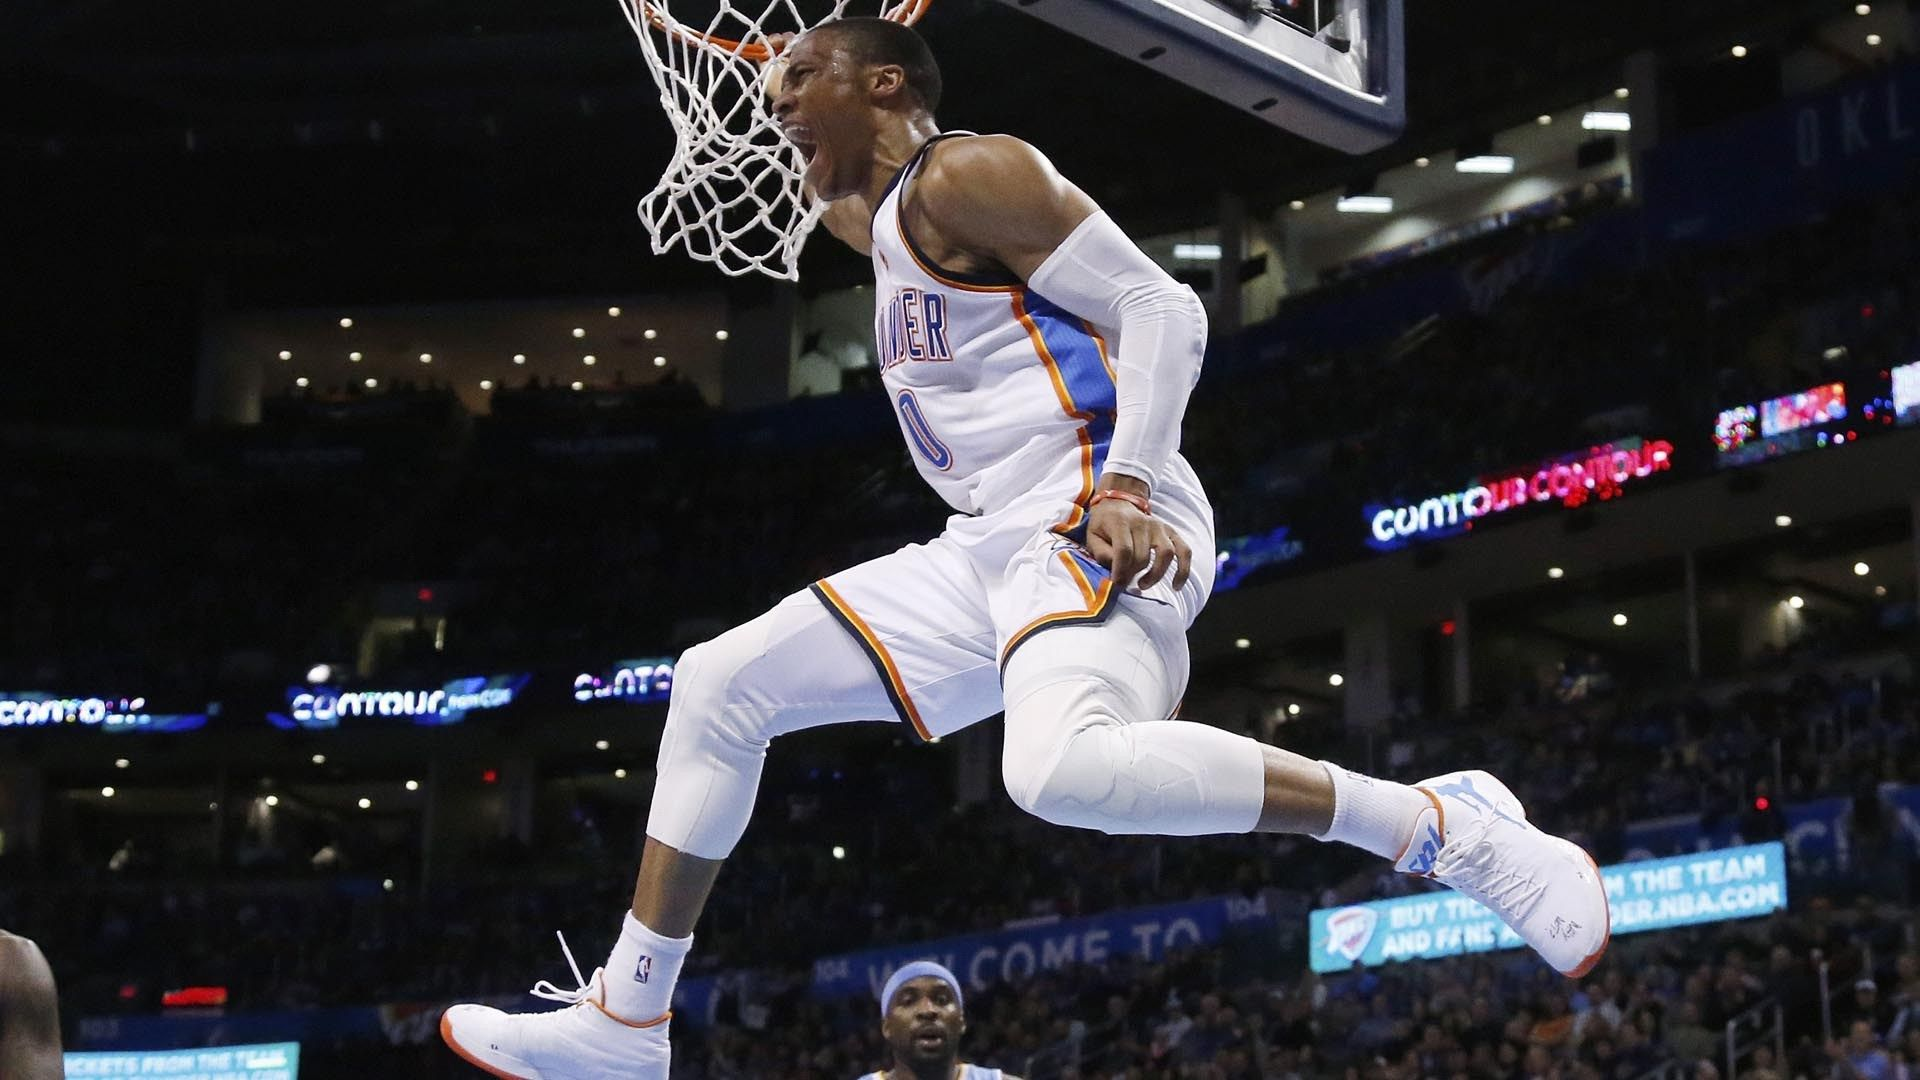 1920x1080 px widescreen hd winter russell westbrook  by Edite Walls for: TrunkWeed.com